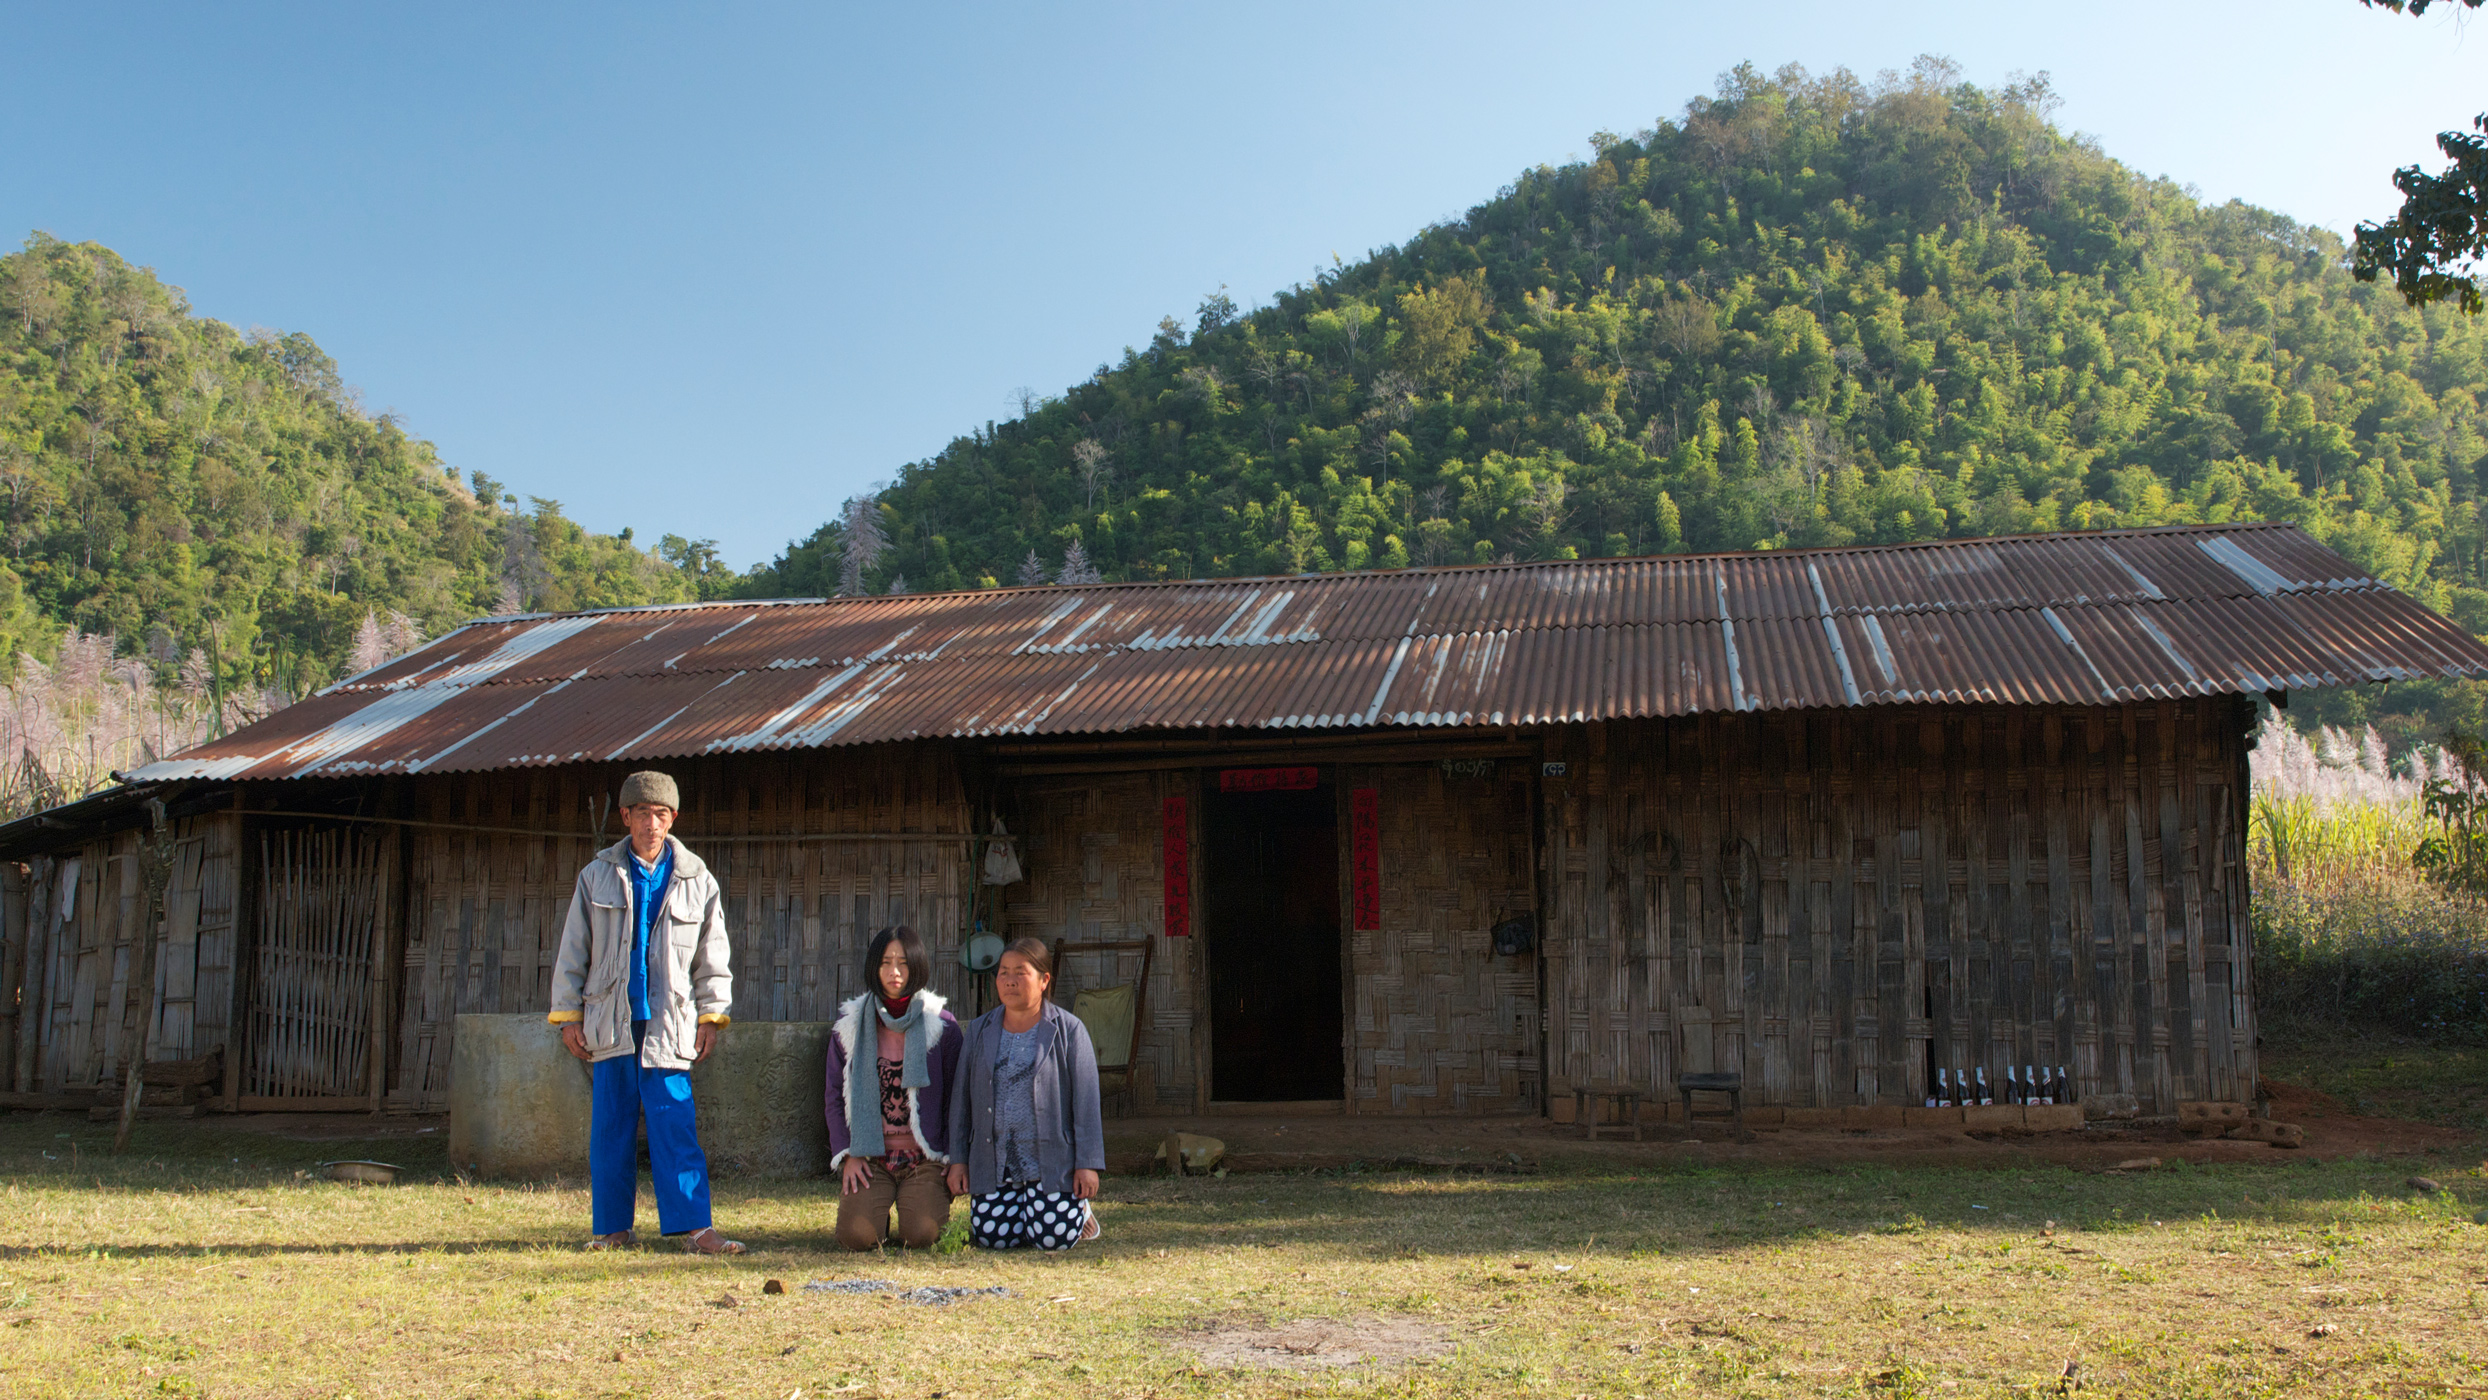 Midi Zhao / Myanmar / 2013 / 14min   In a village in Myanmar, Midi Z portray the end of life of a grandfather, with the nolstagic of a homeland came in a symbol of BURIAL CLOTHES.   Director: Midi Z born in Myanmar,trained as an artist in Taiwan. In 2011 Midi made his first feature, Return to Burma, which screened at the Rotterdam Tiger Competition and Busan New Currents Competition. His latest feature, Ice Poison, premiered at the 2014 Berlinale, winning Best Film at Edinburgh International Film Festival.